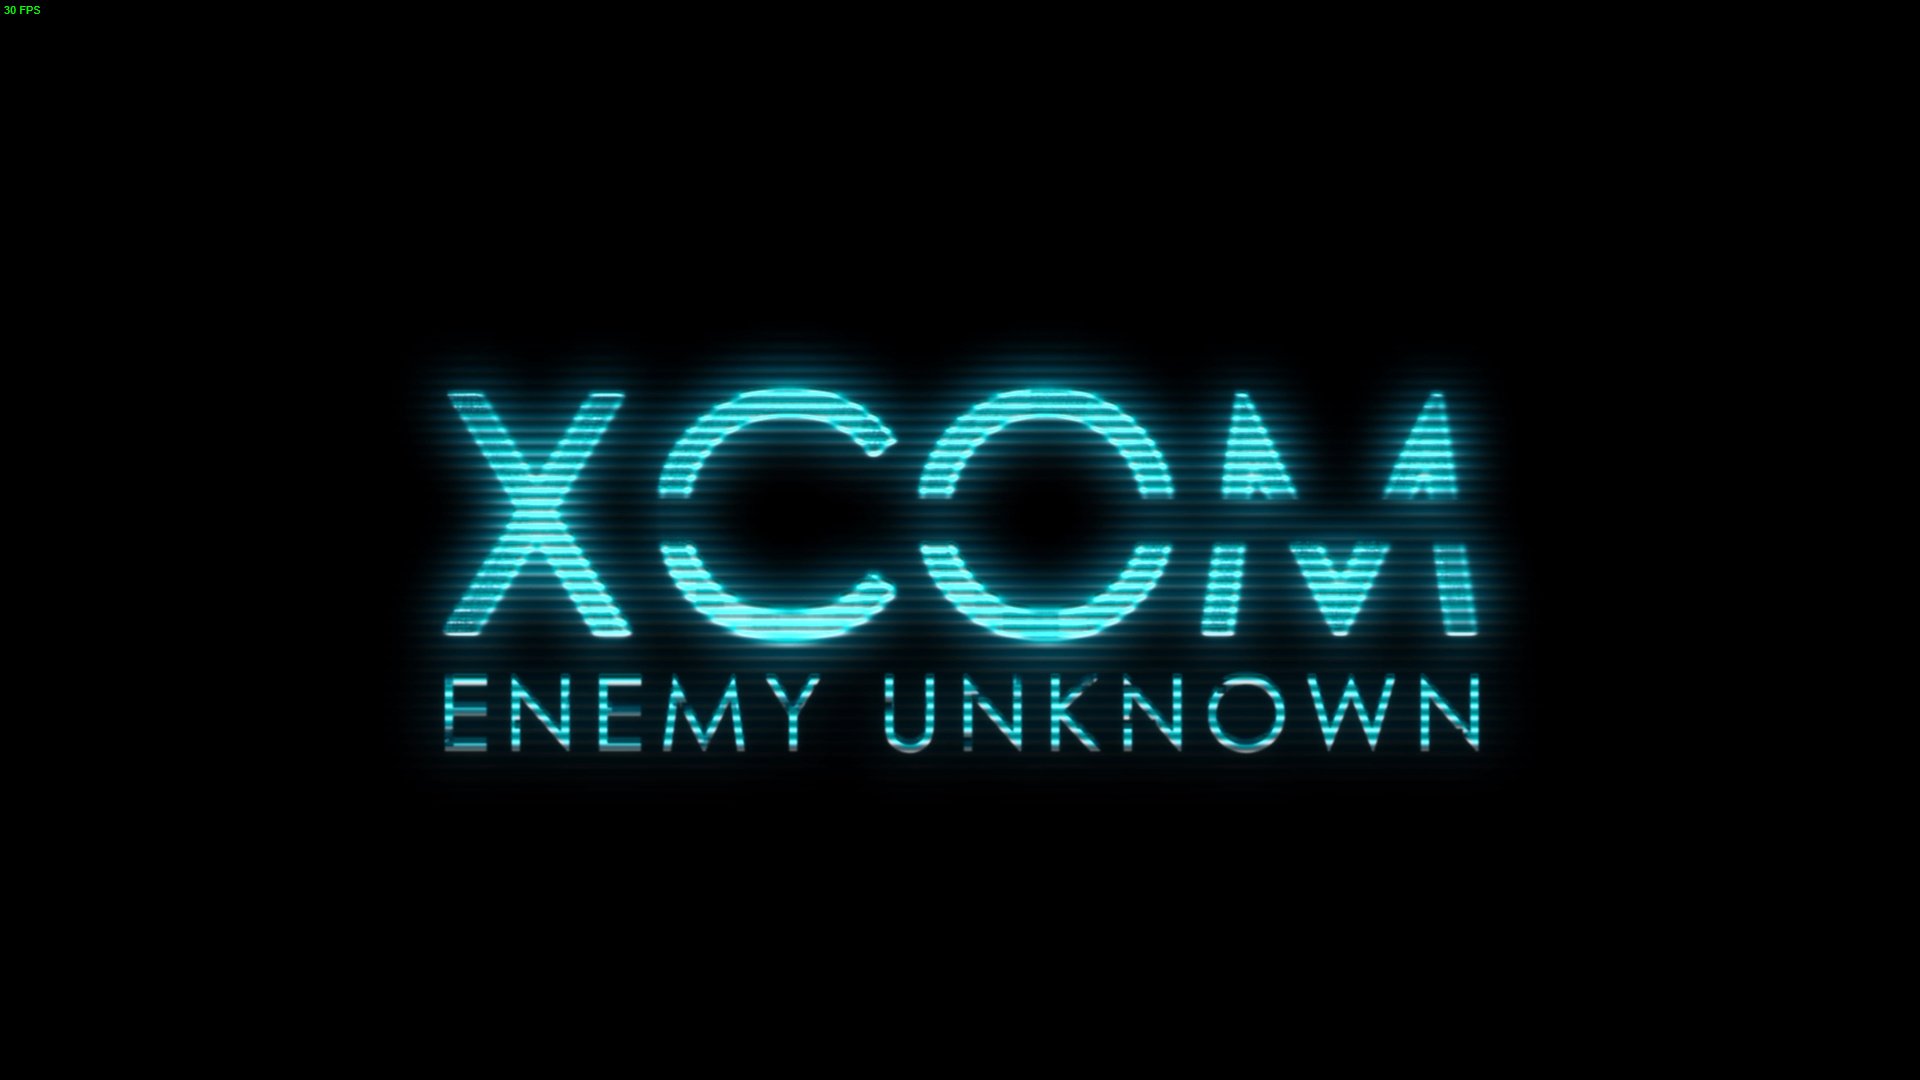 XComGame 2017-10-09 22-03-40-959.jpg - XCOM: Enemy Unknown